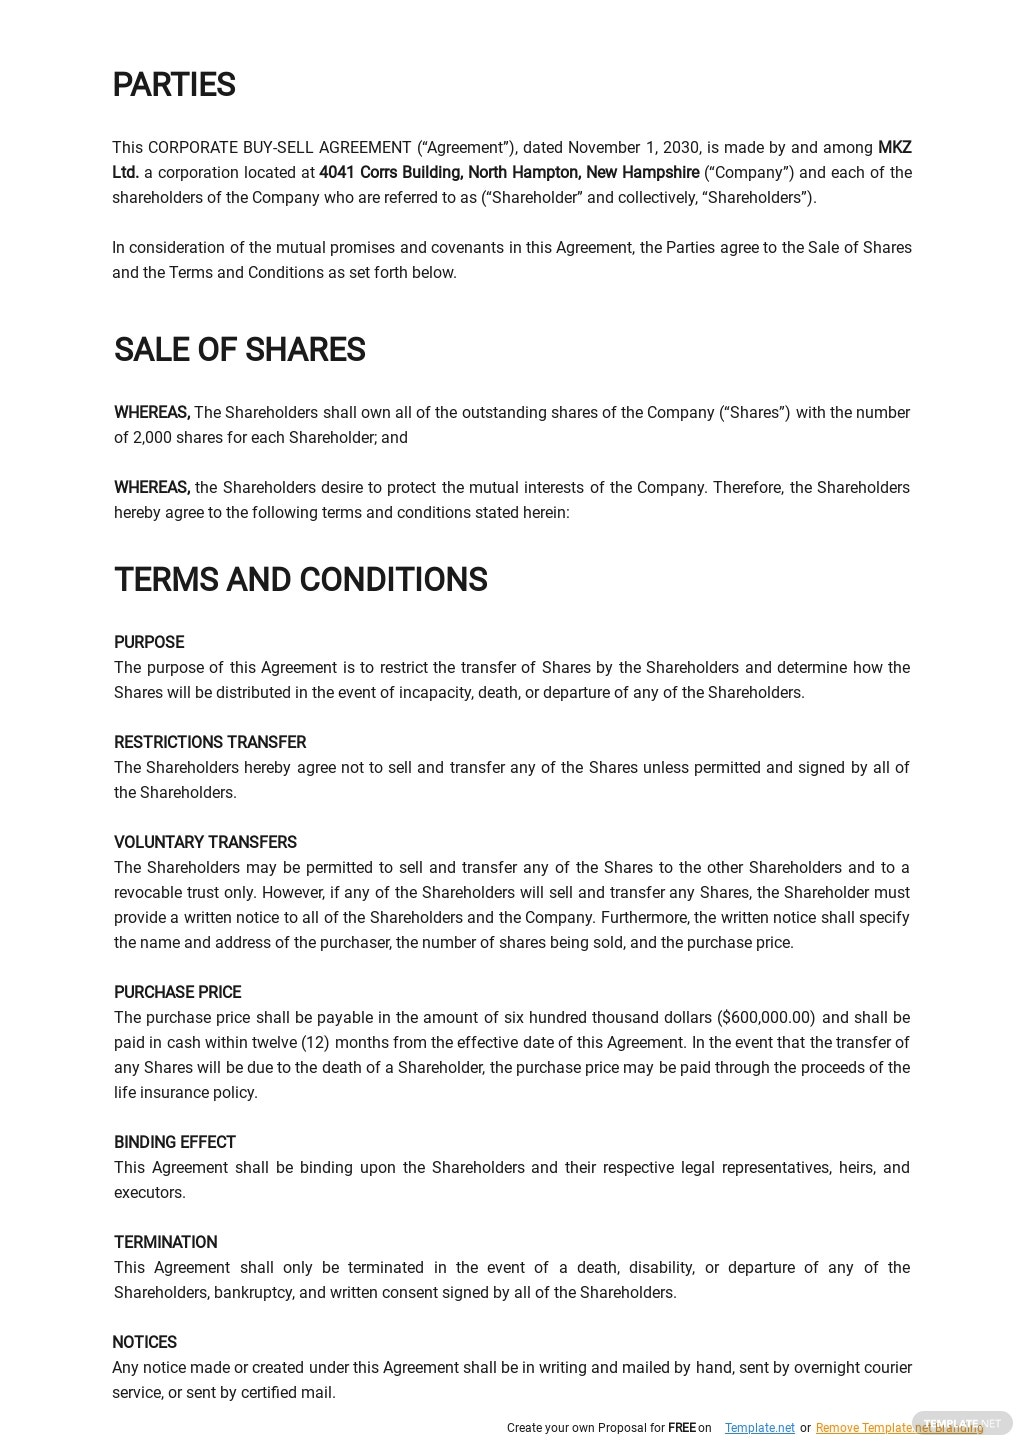 Corporate Buy Sell Agreement Template 1.jpe